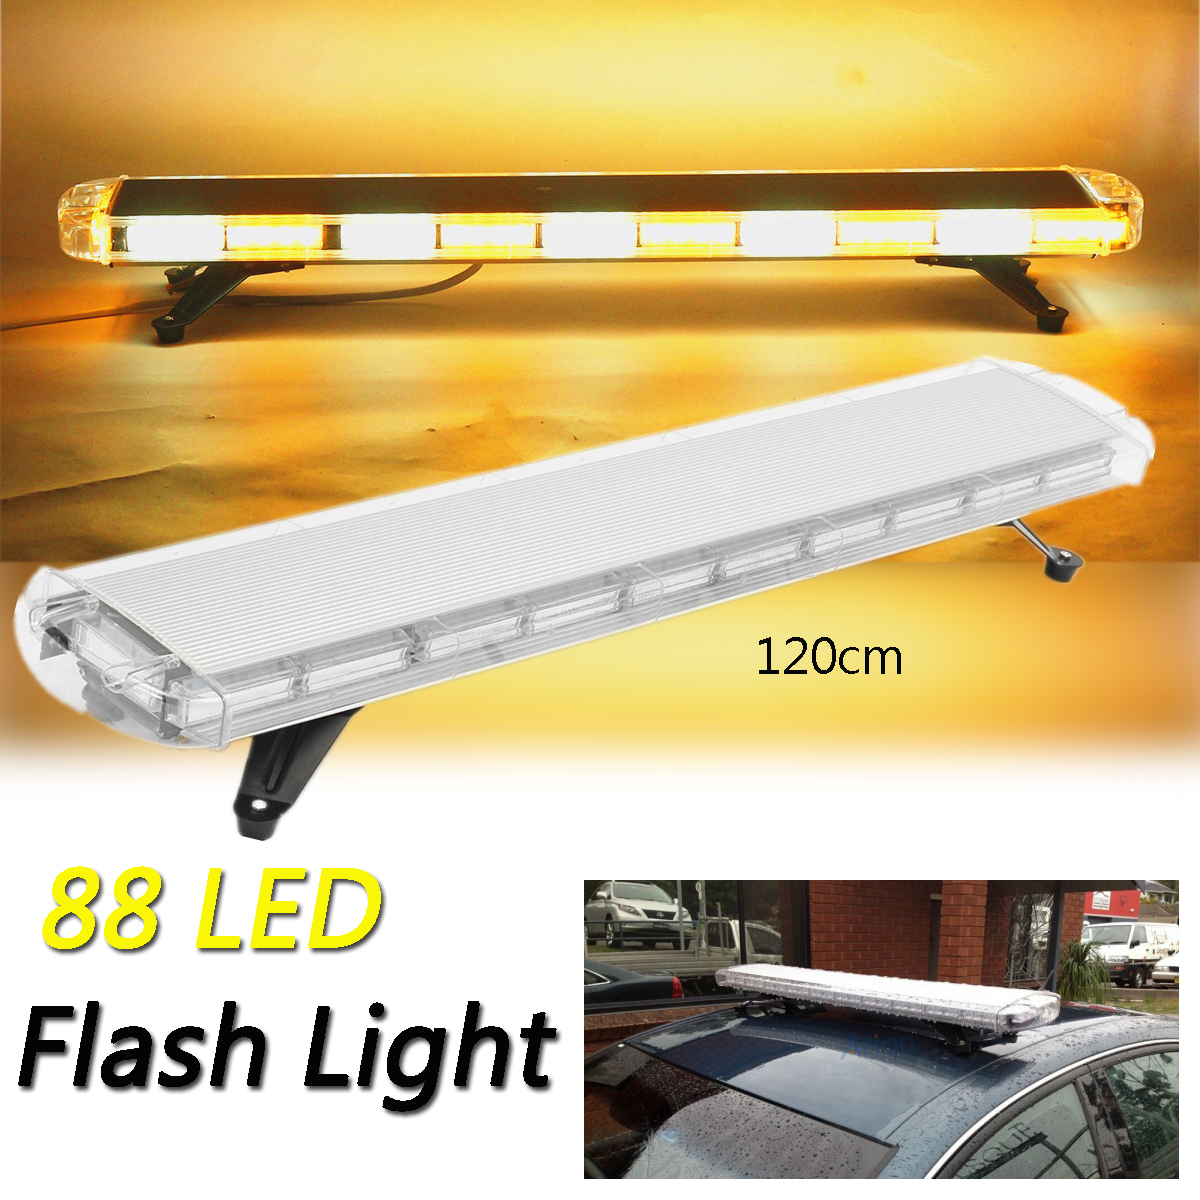 Audew 12V 88LED 47 Strobe Light Bar Yellow White Emergency Beacon Warn Tow Truck Response Fog led Flashing Lights Universal castaleca high power 88w 47 88led emergency warning beacon car truck strobe light bar roof top multiple colour flashing lamp